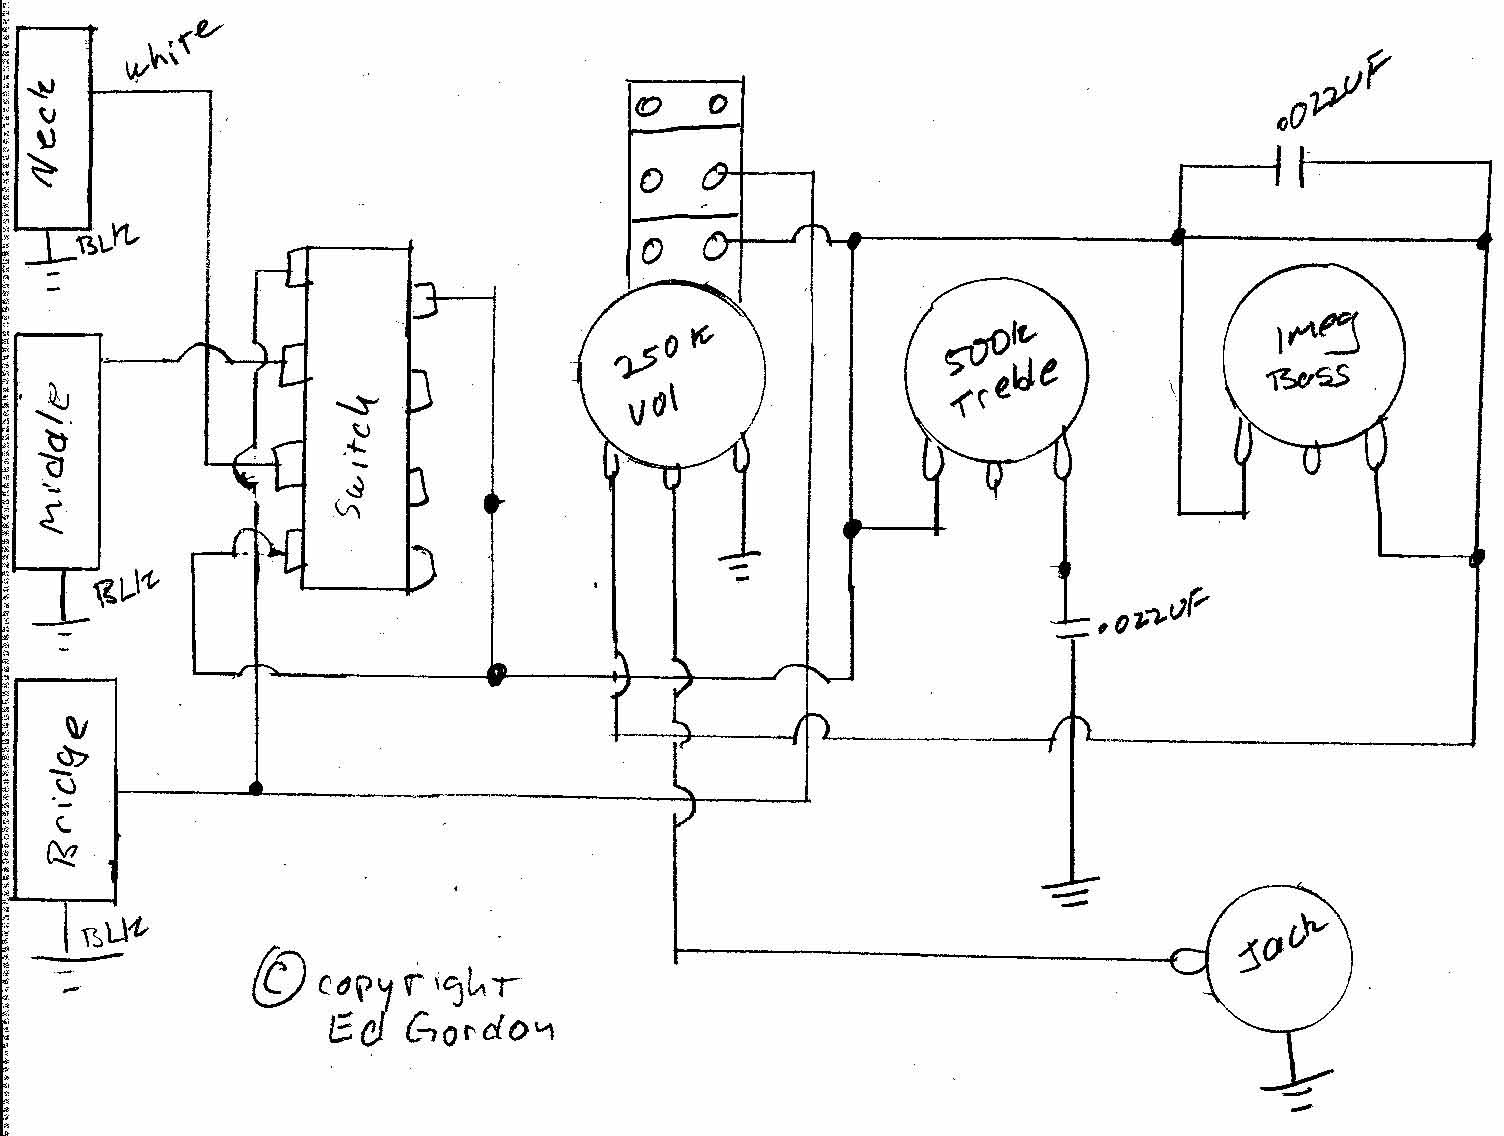 rothstein guitars u2022 serious tone for the serious player gl ptb Jackson Wiring Diagrams g l guitar wiring diagram